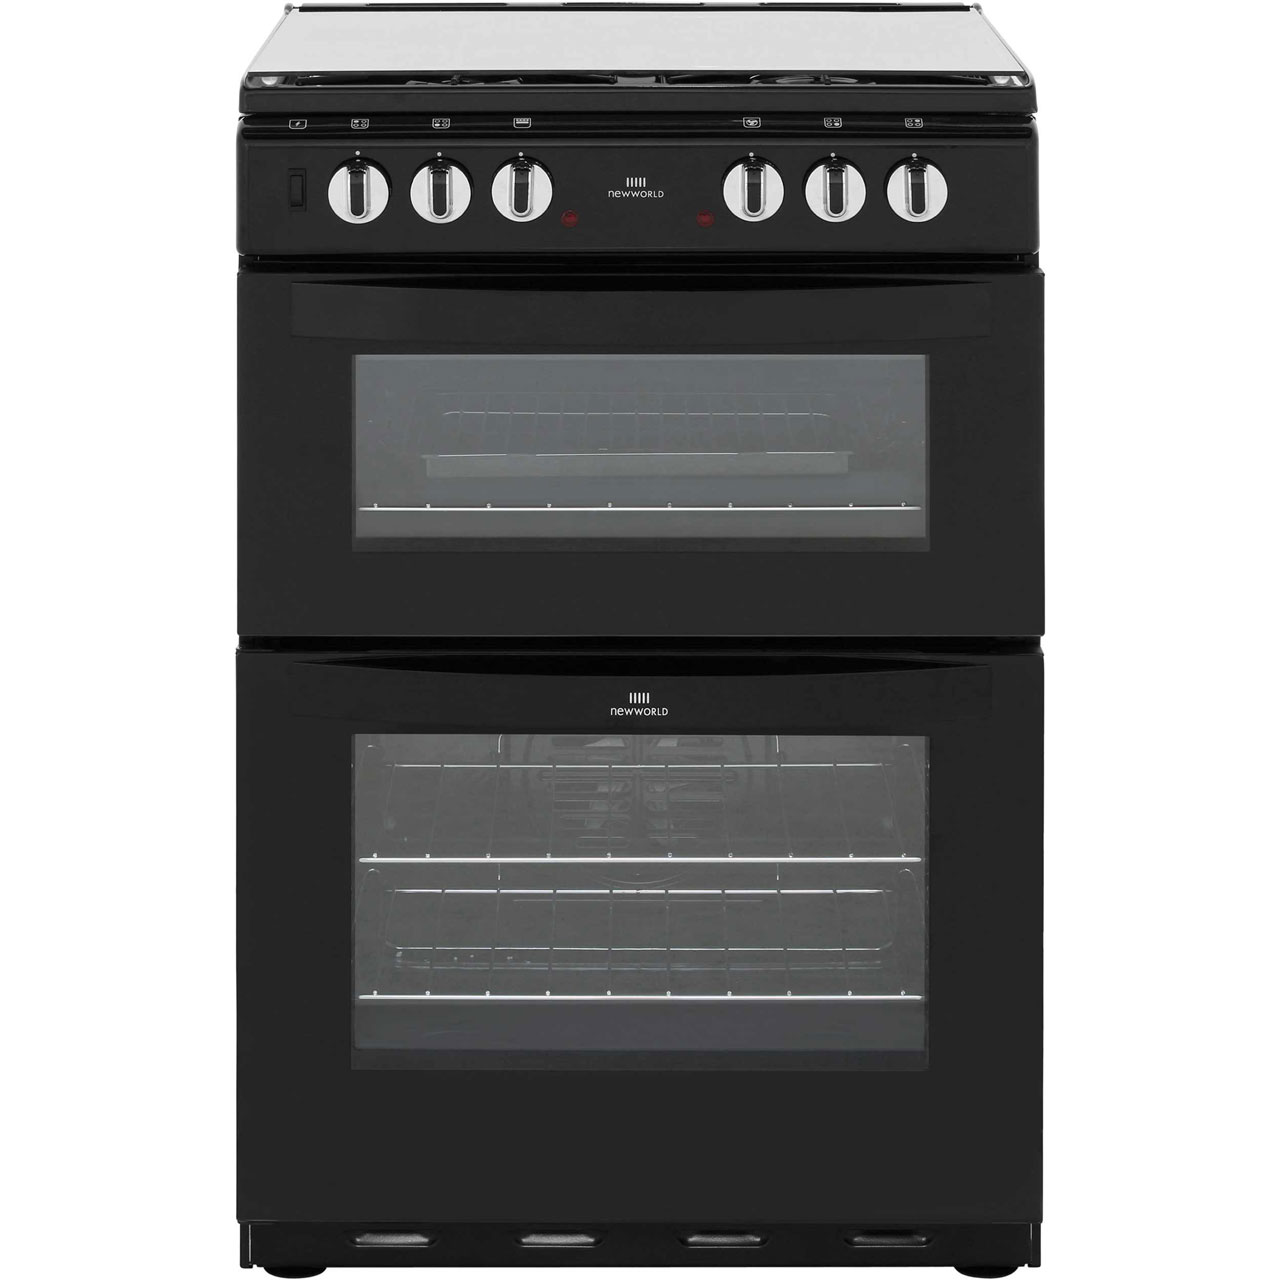 Newworld NW601DFDOL Dual Fuel Cooker - Black